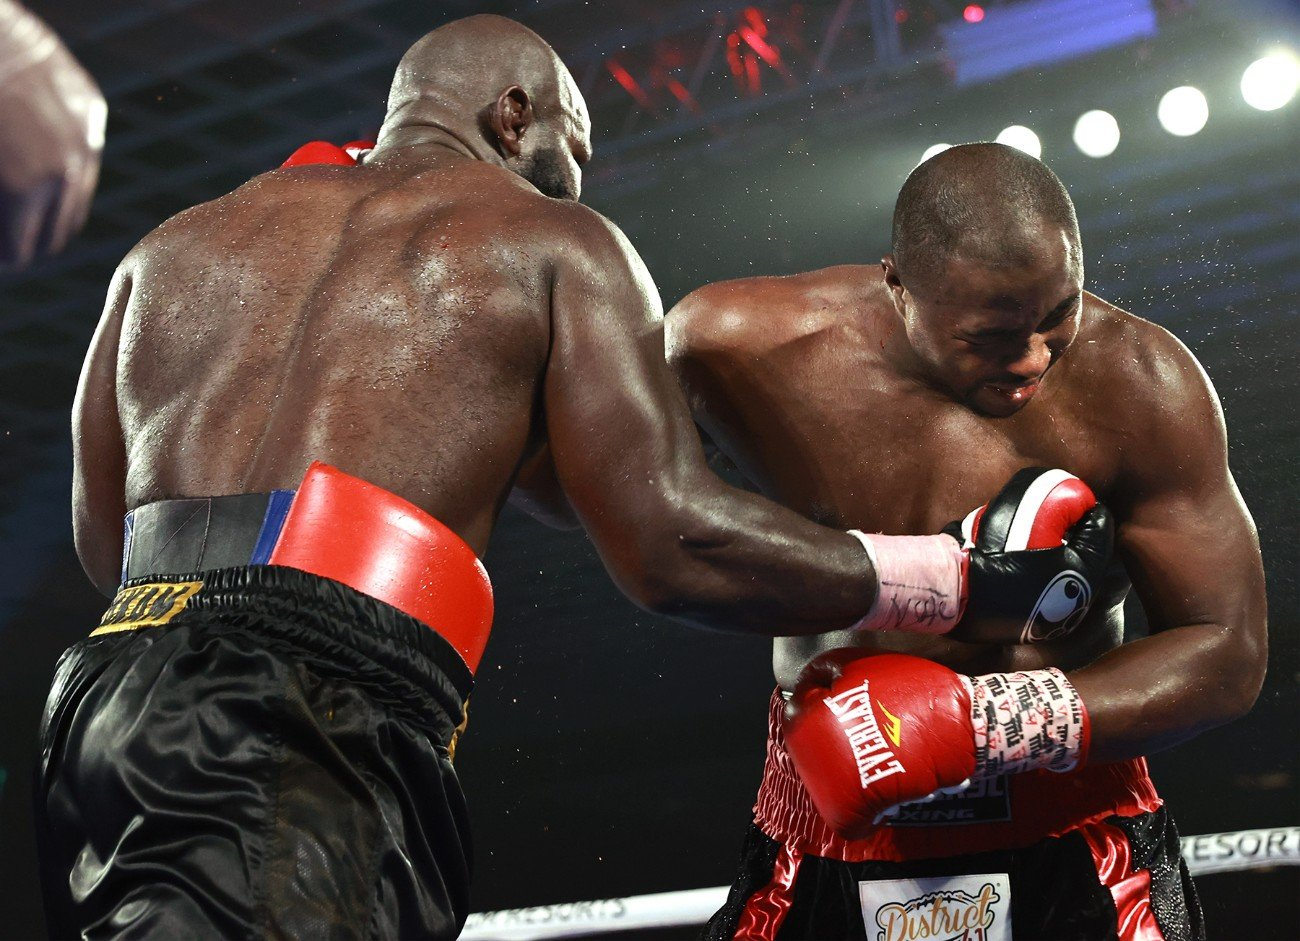 """Carlos Takam - Carlos Takam, at 39 years old, is still a heavyweight force. Takam ended Week 5 inside the MGM Grand """"Bubble"""" with a 10-round unanimous decision over Jerry Forrest by scores of 98-92, 97-93, and 96-94."""